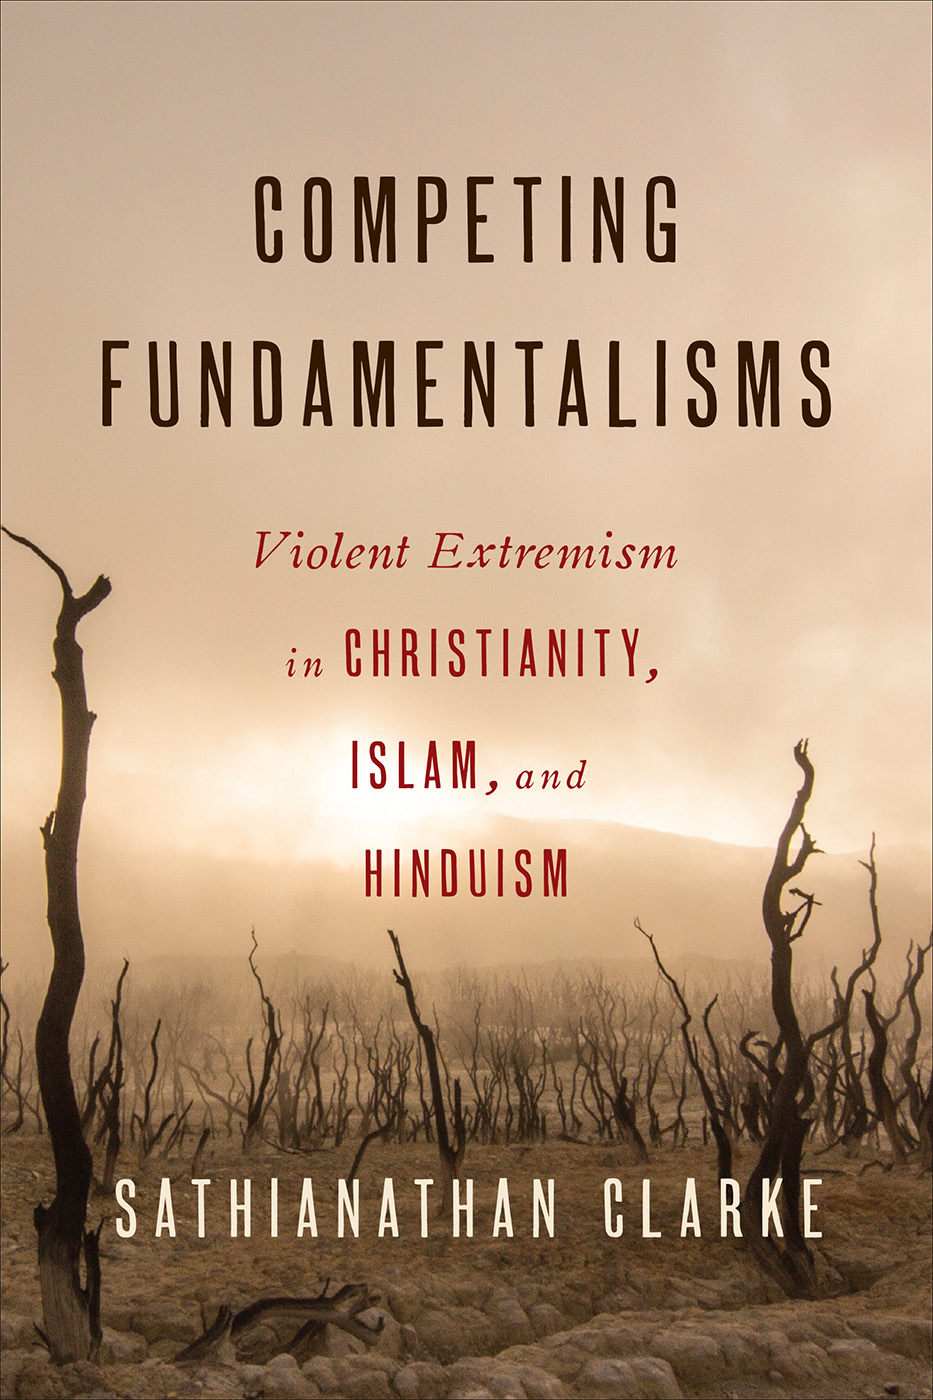 Competing Fundamentalisms